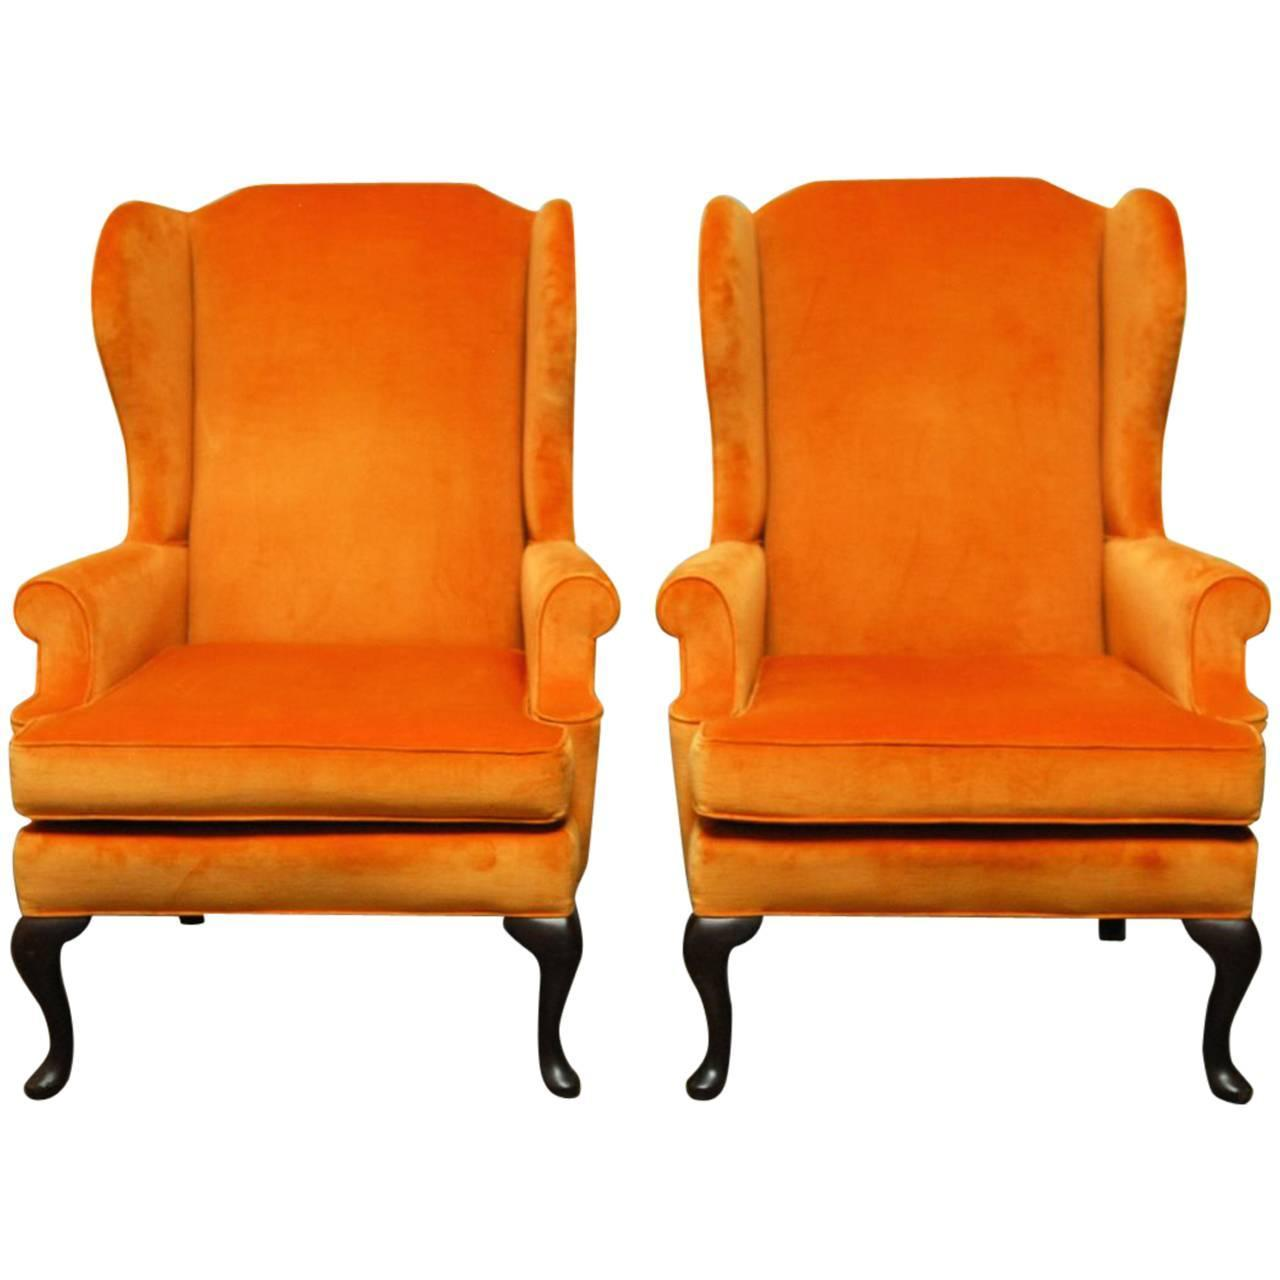 pair of queen anne style orange crush velvet wing chairs for sale at 1stdibs